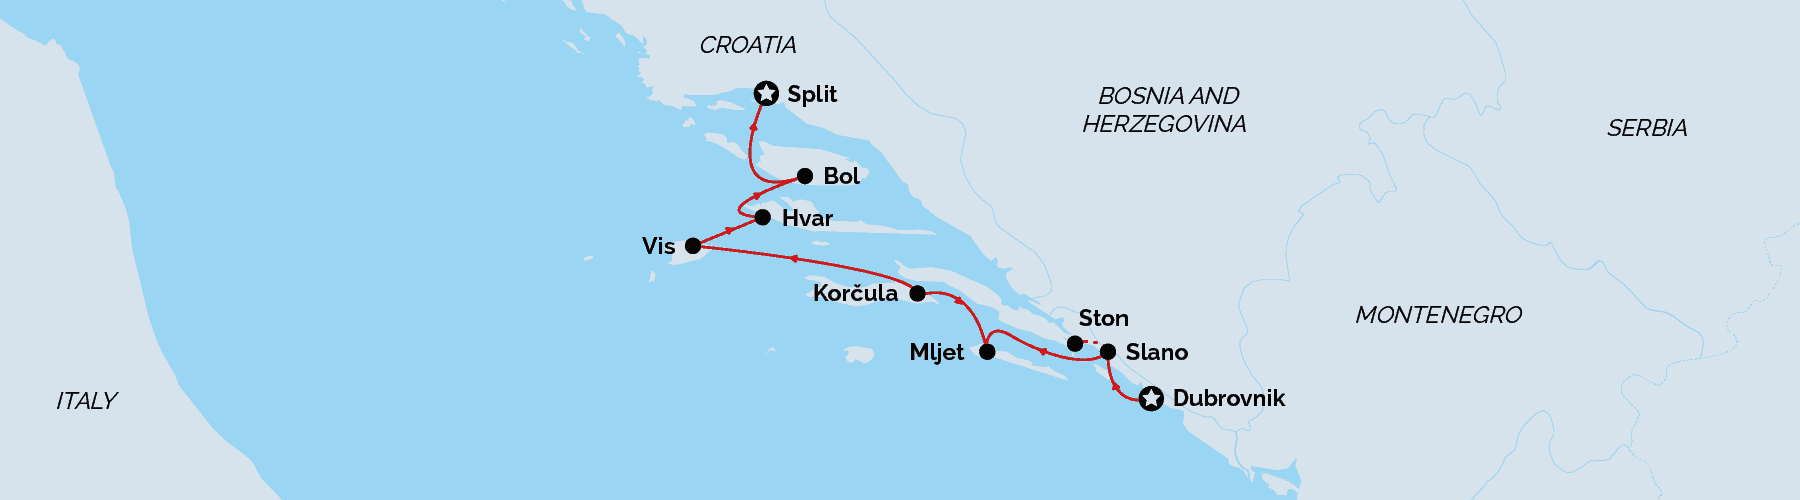 Cruise Map Dubrovnik to Split deluxe